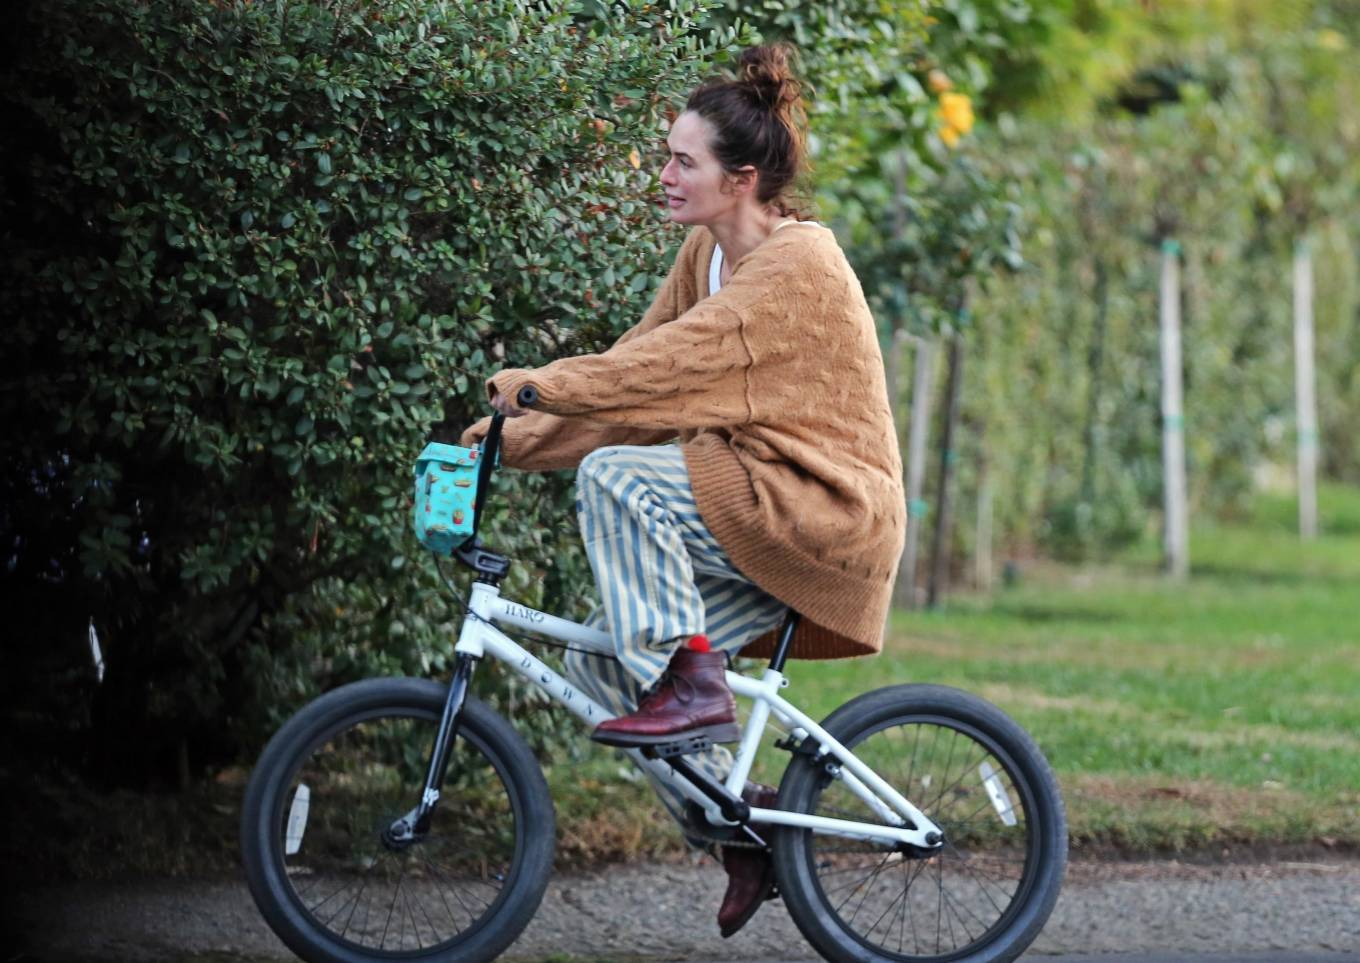 Lena Headey 2020 : Lena Headey – Riding a bicycle in Los Angeles-10